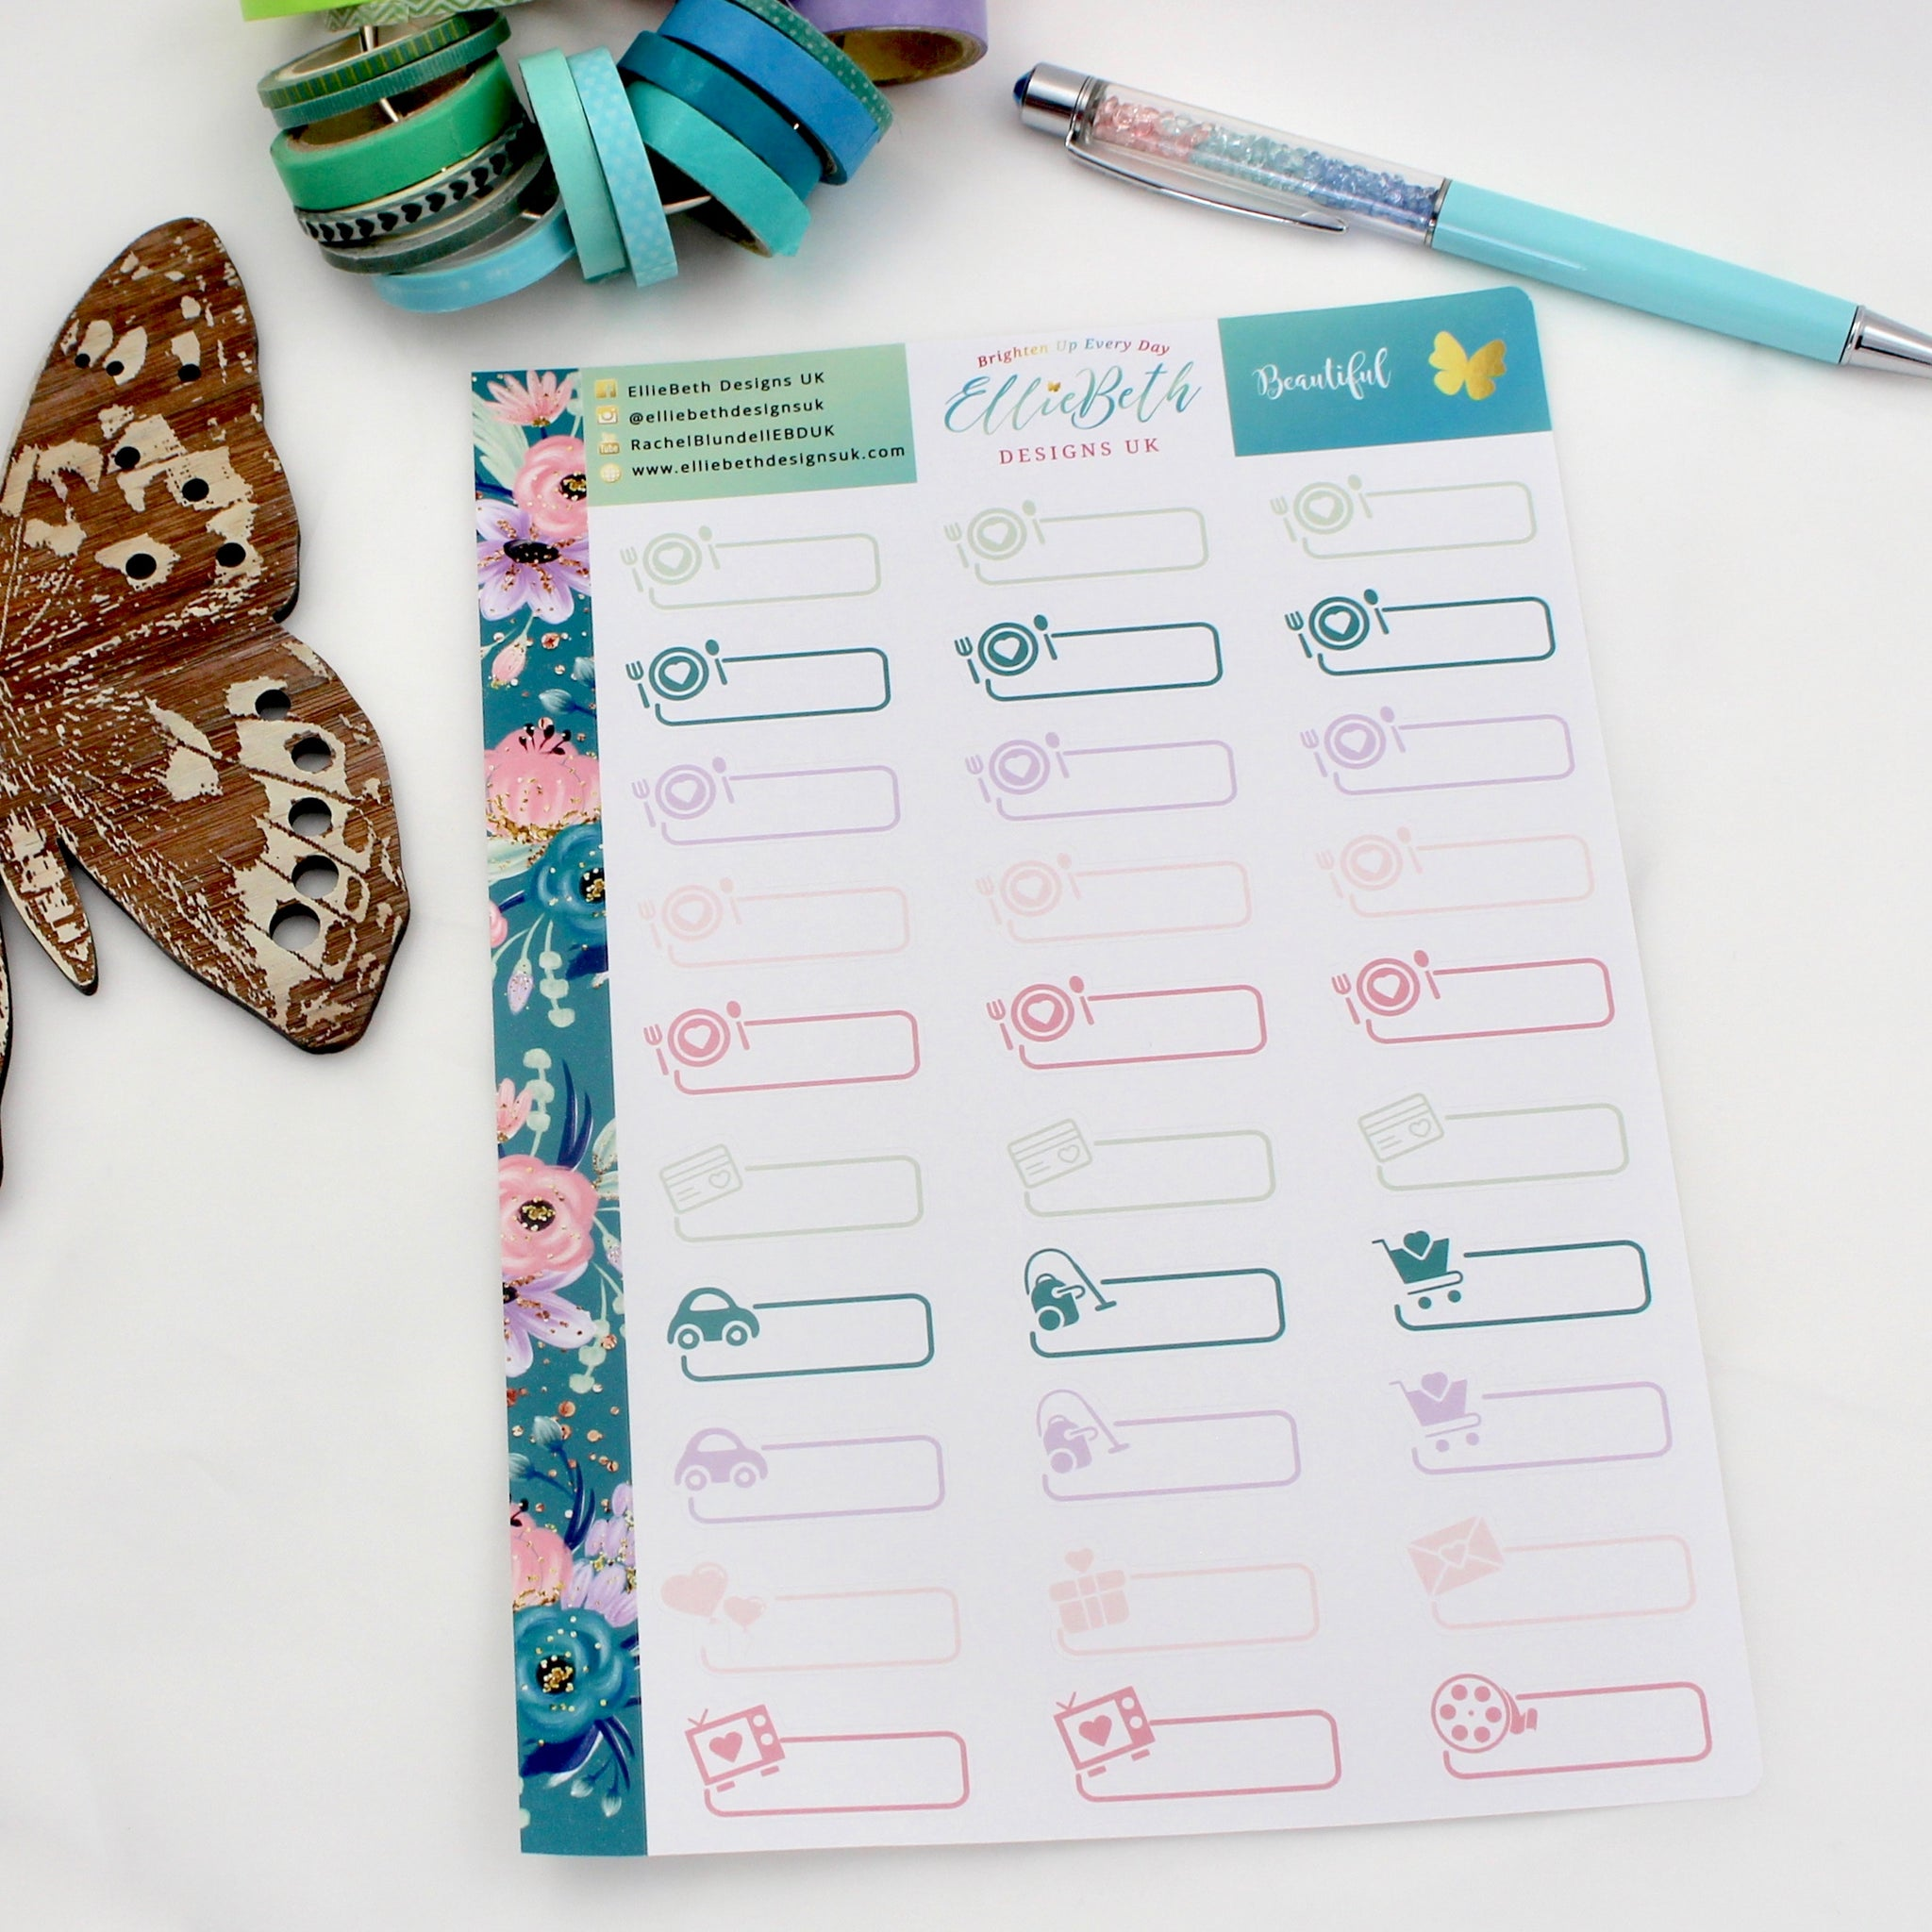 'Beautiful' - Day to Day Labels -  A5 binder ready planner stickers - EllieBeth Designs UK